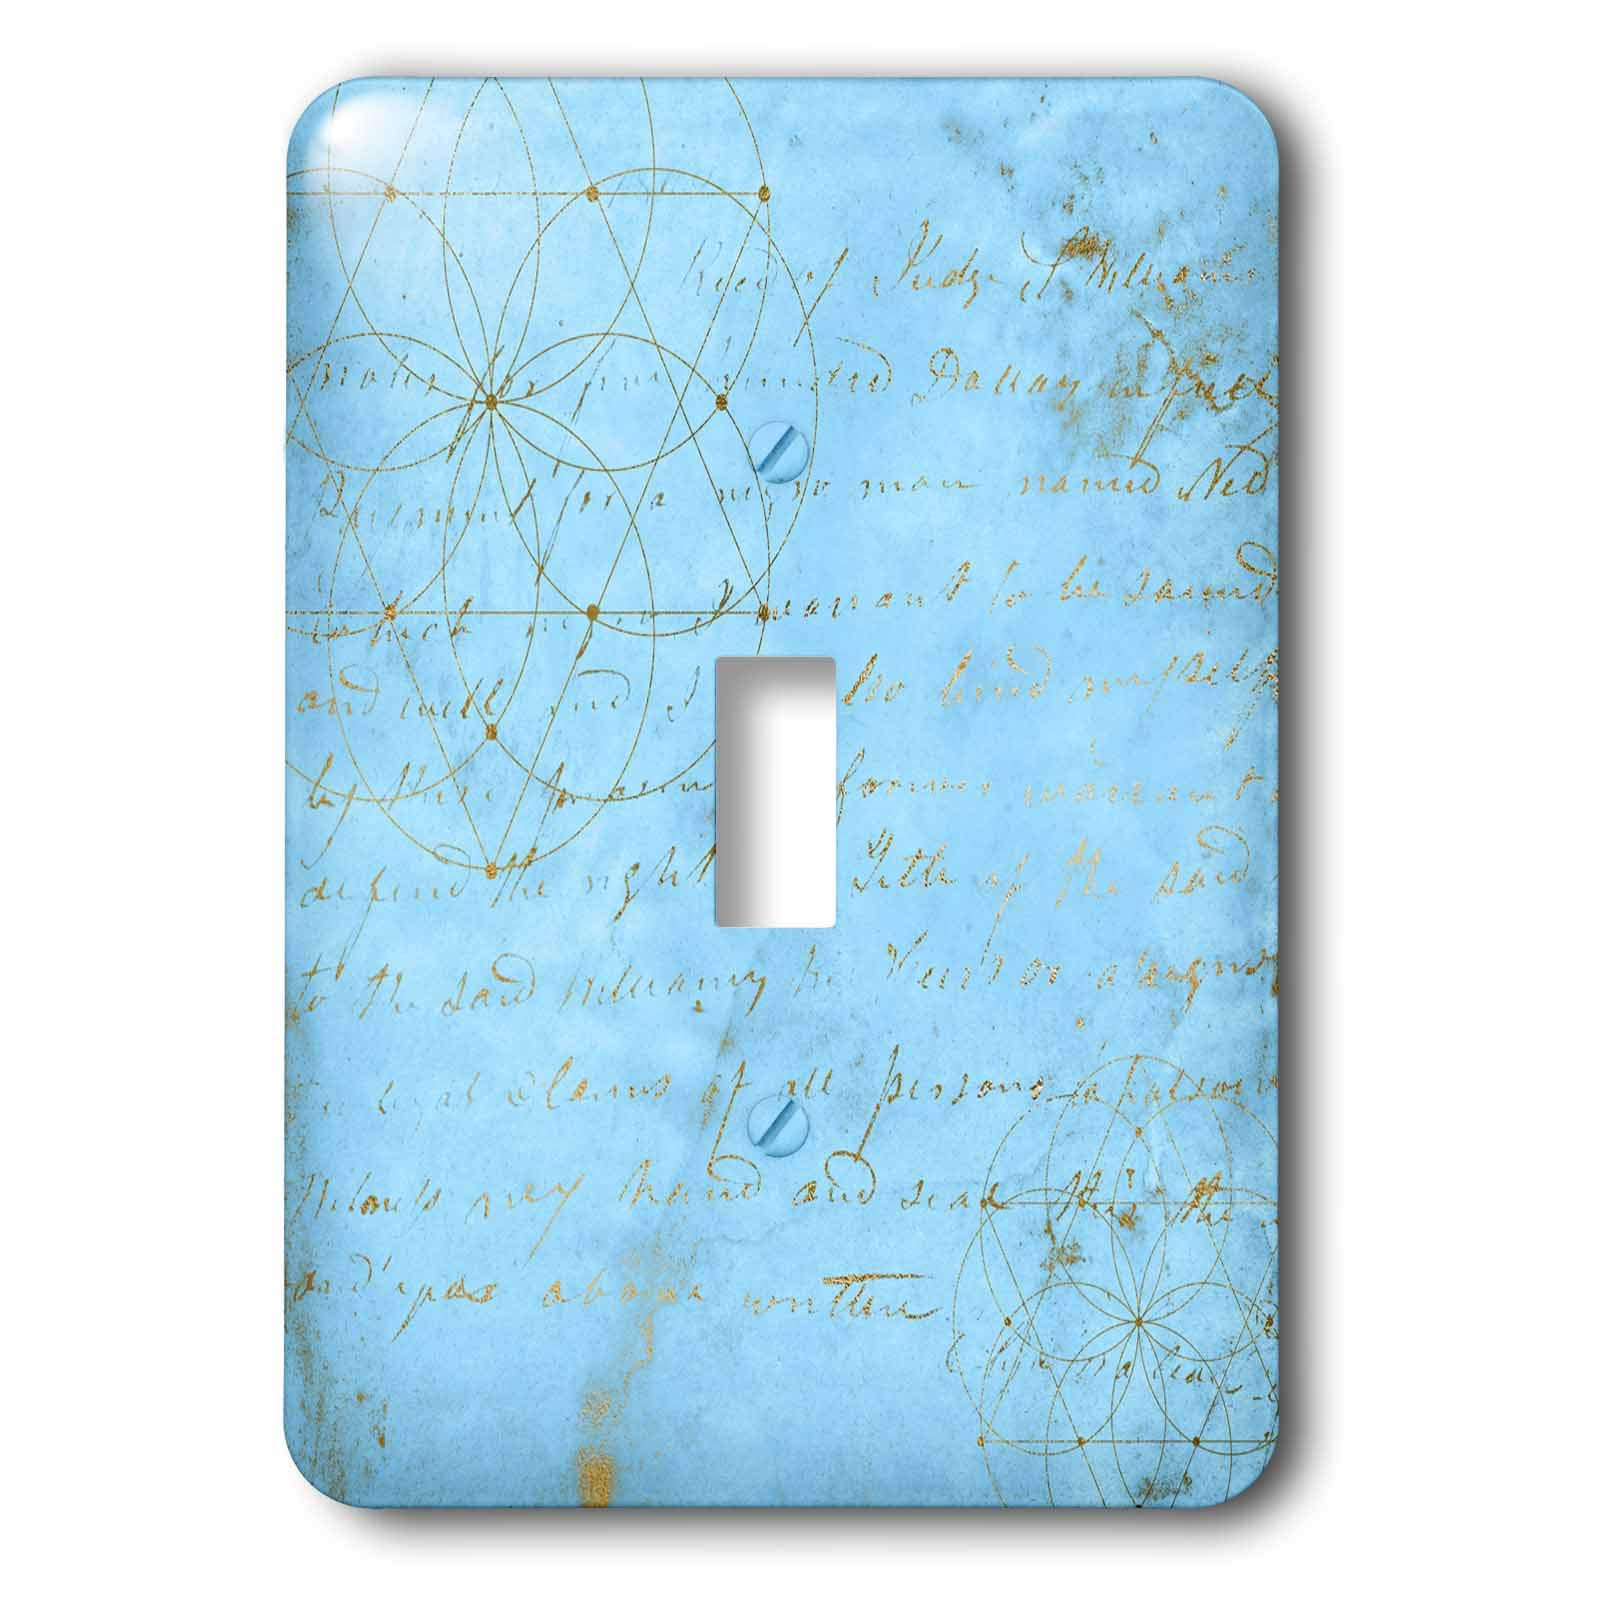 3dRose Uta Naumann Faux Glitter Pattern - Image of Sky Blue and Gold Metal Foil Vintage Luxury Text Pattern - Light Switch Covers - single toggle switch (lsp_290168_1) by 3dRose (Image #1)